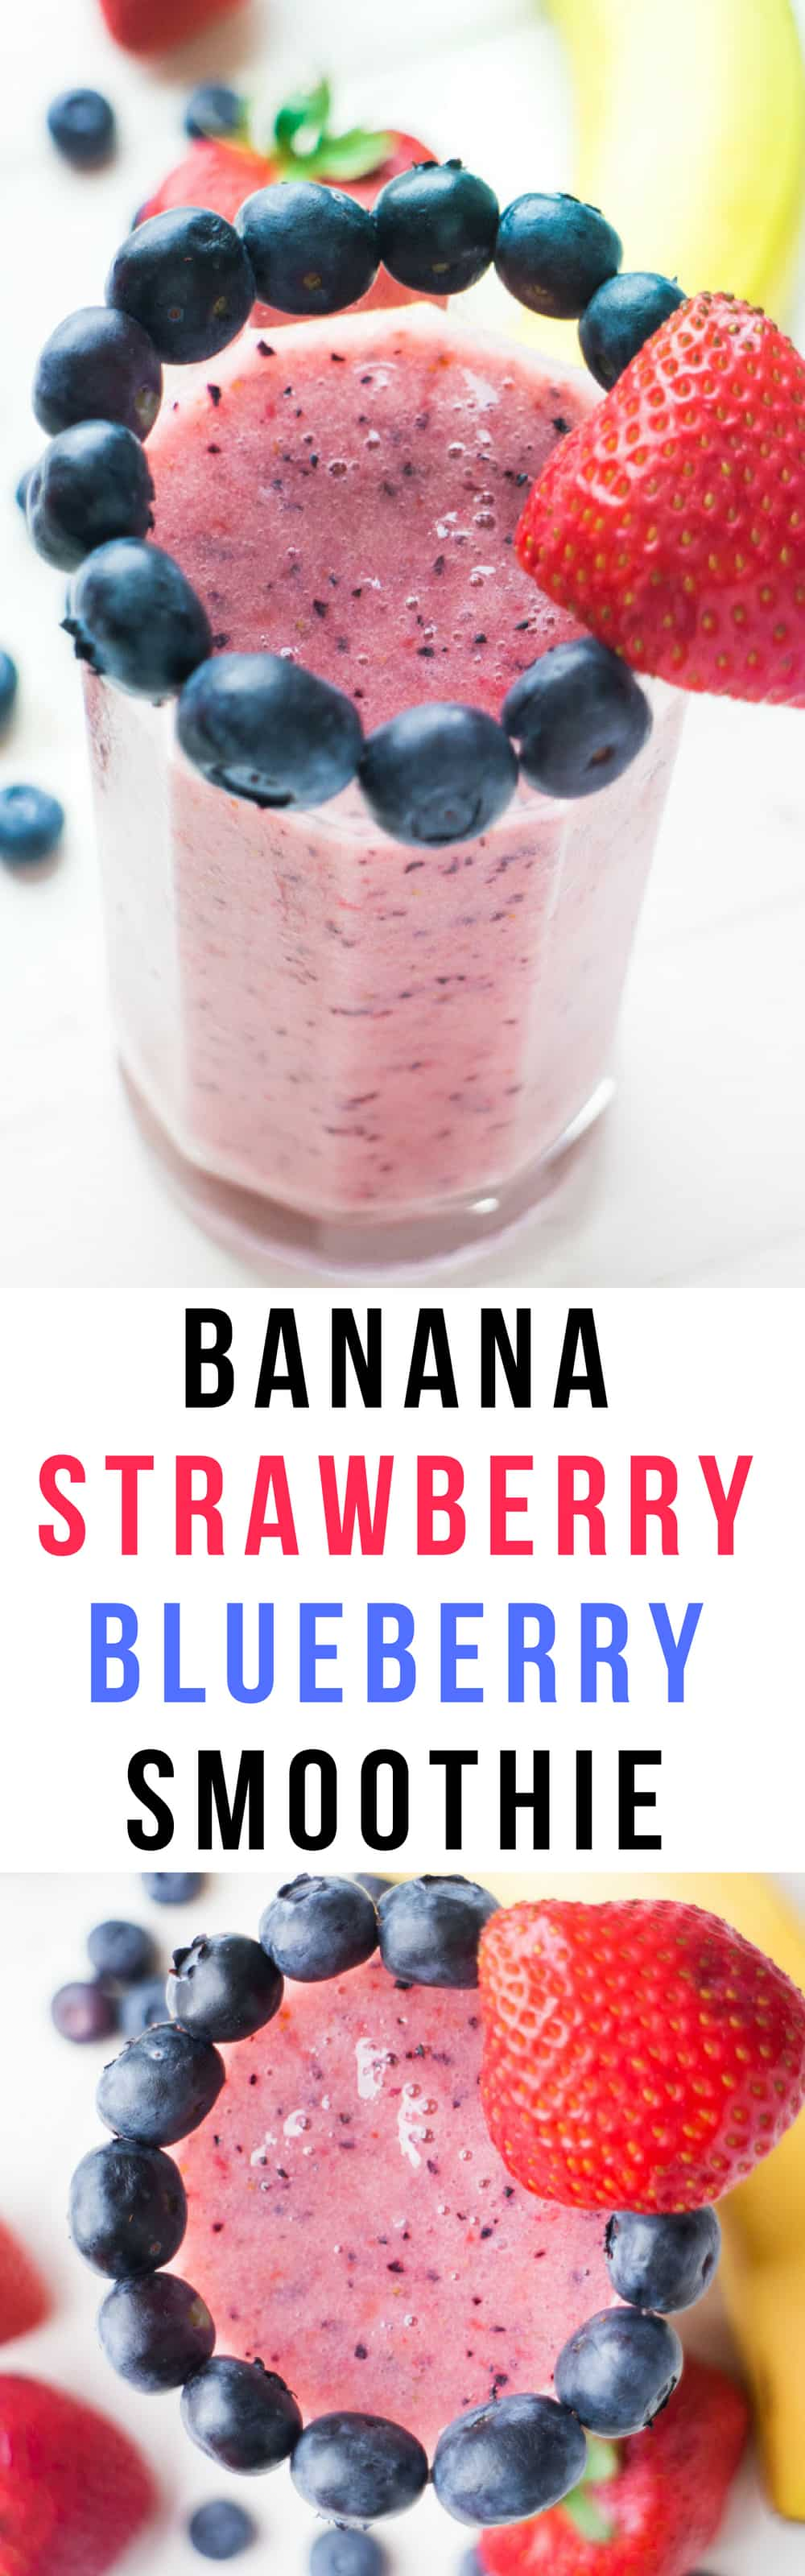 HEALTHY, Dairy Free Banana Strawberry Blueberry Smoothie! This easy recipe uses fresh fruit to make a smoothie for breakfast, for kids and for weight loss! It's dairy free and vegan.